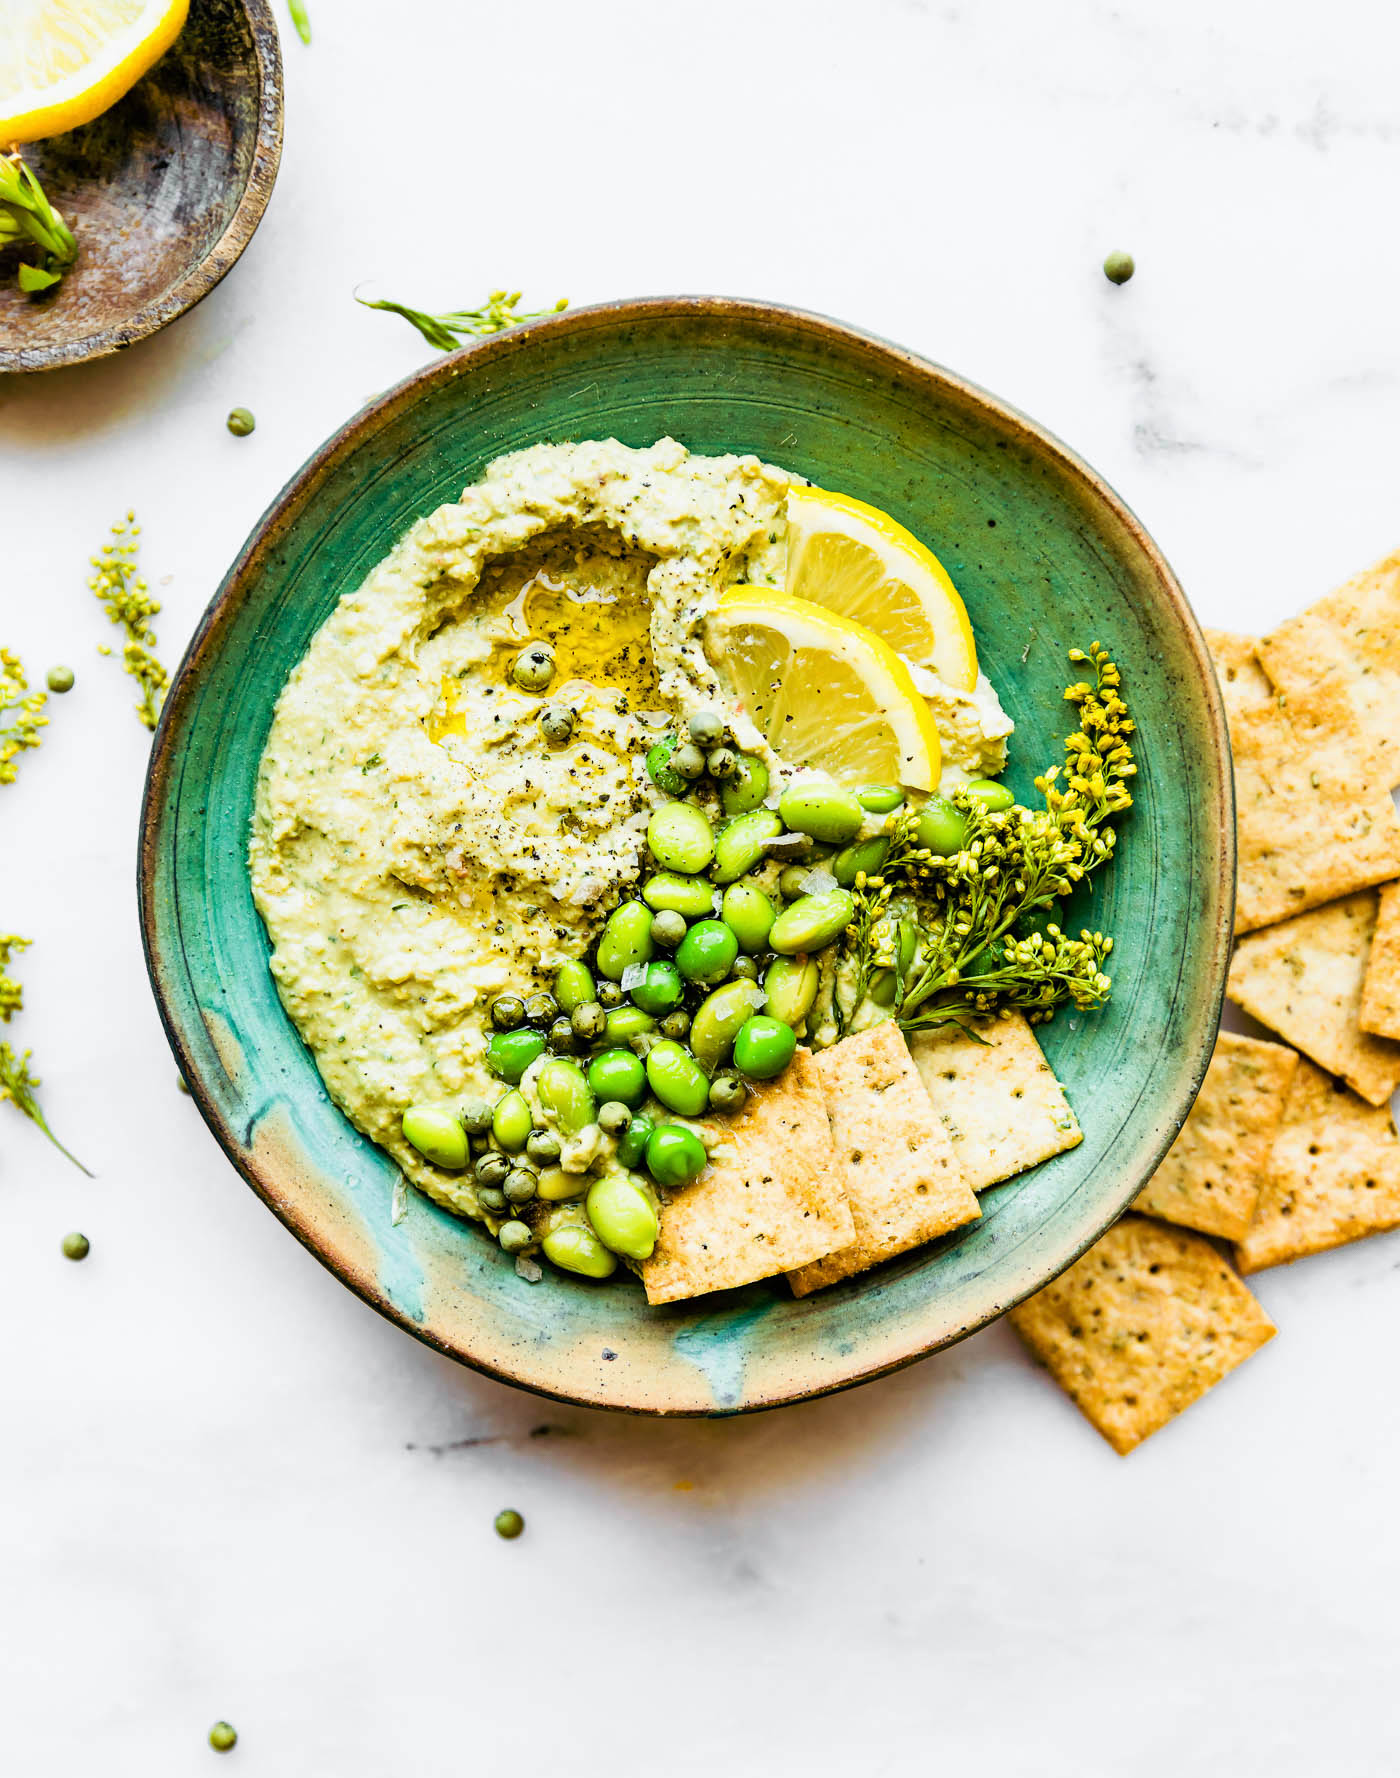 Quick Vegan Edamame Pesto dip! A vegan pesto dip recipe that creamy, healthy, and flavorful.  Nut free, rich in plant protein, and made with less than 6 ingredients. Use this edamame pesto dip on a sandwiches, in pasta, or make into wholesome appetizer dip. #dip #pesto #vegan #healthy #appetizer #snack #dairyfree